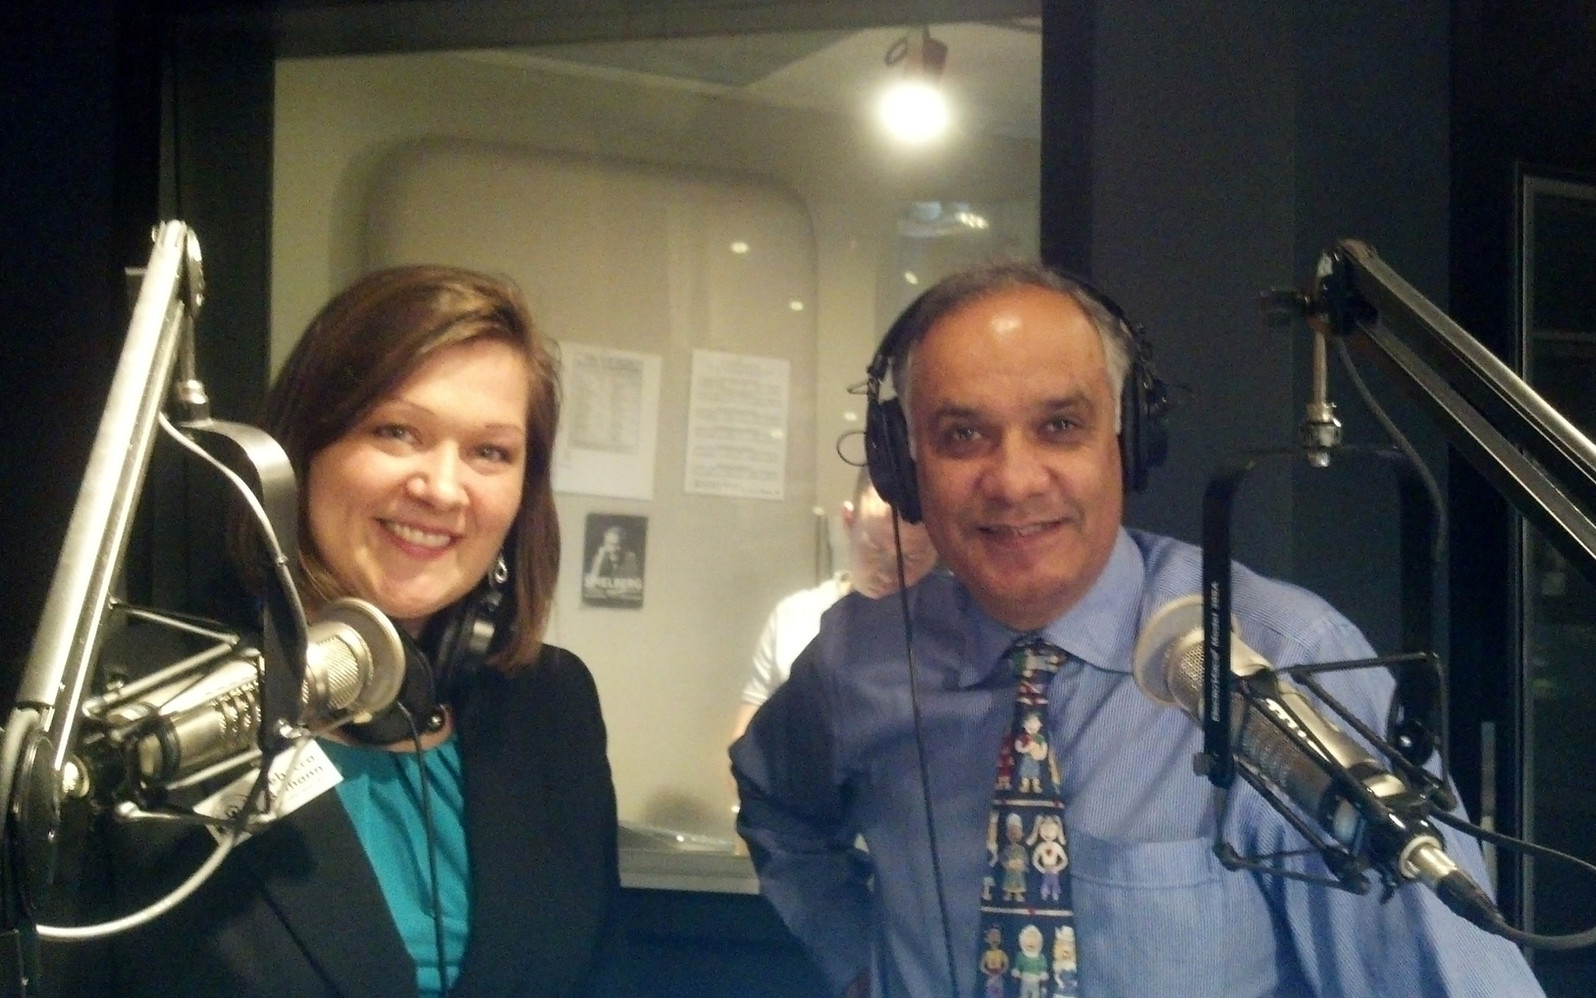 2013 ~ With Elder Attorney Rajiv Nagaich on his Show